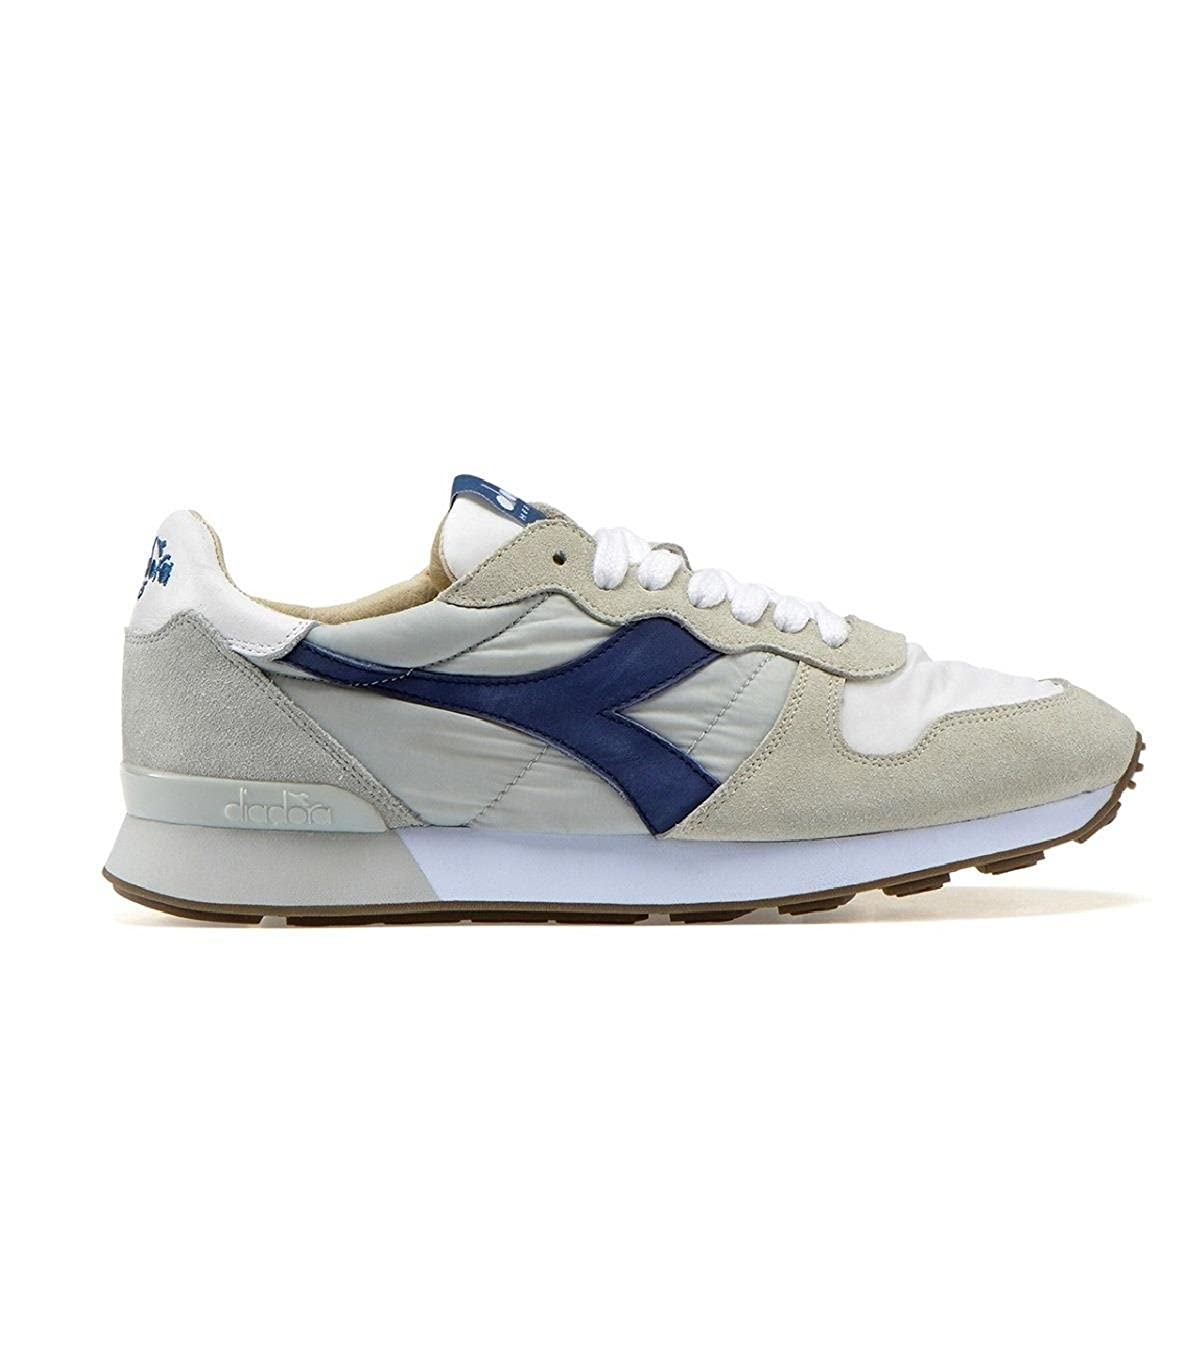 Scarpa Diadora Uomo Camaro h sw core 201 172774 01 20006 White estiva ss18  45  Amazon.co.uk  Shoes   Bags 90b540d8bad